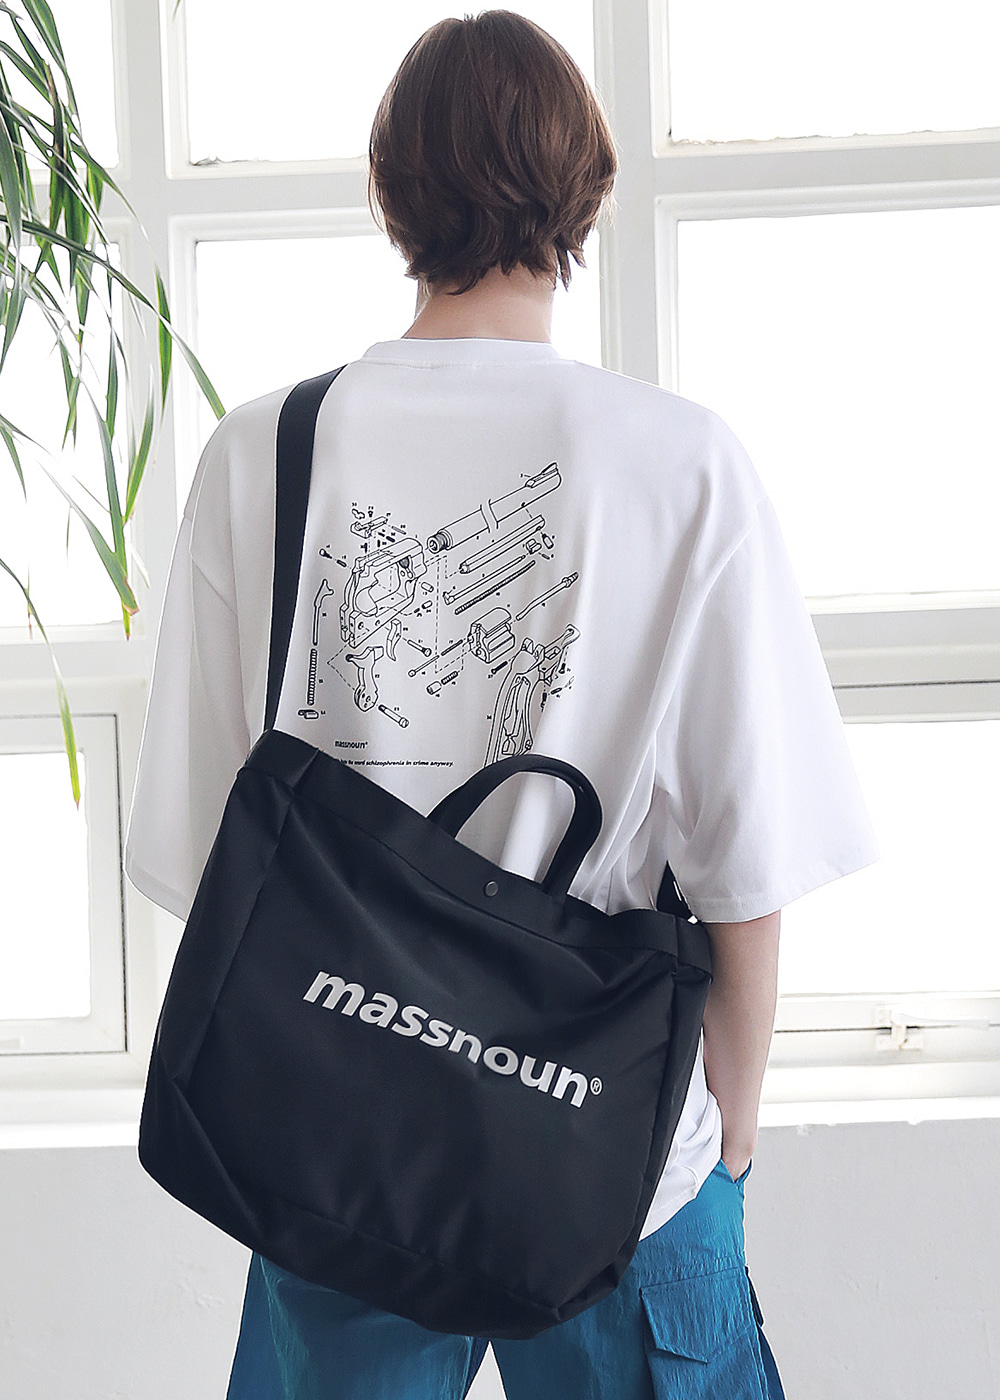 SL LOGO 3M 2WAY SHOULDER BAG MSNAB002-BK